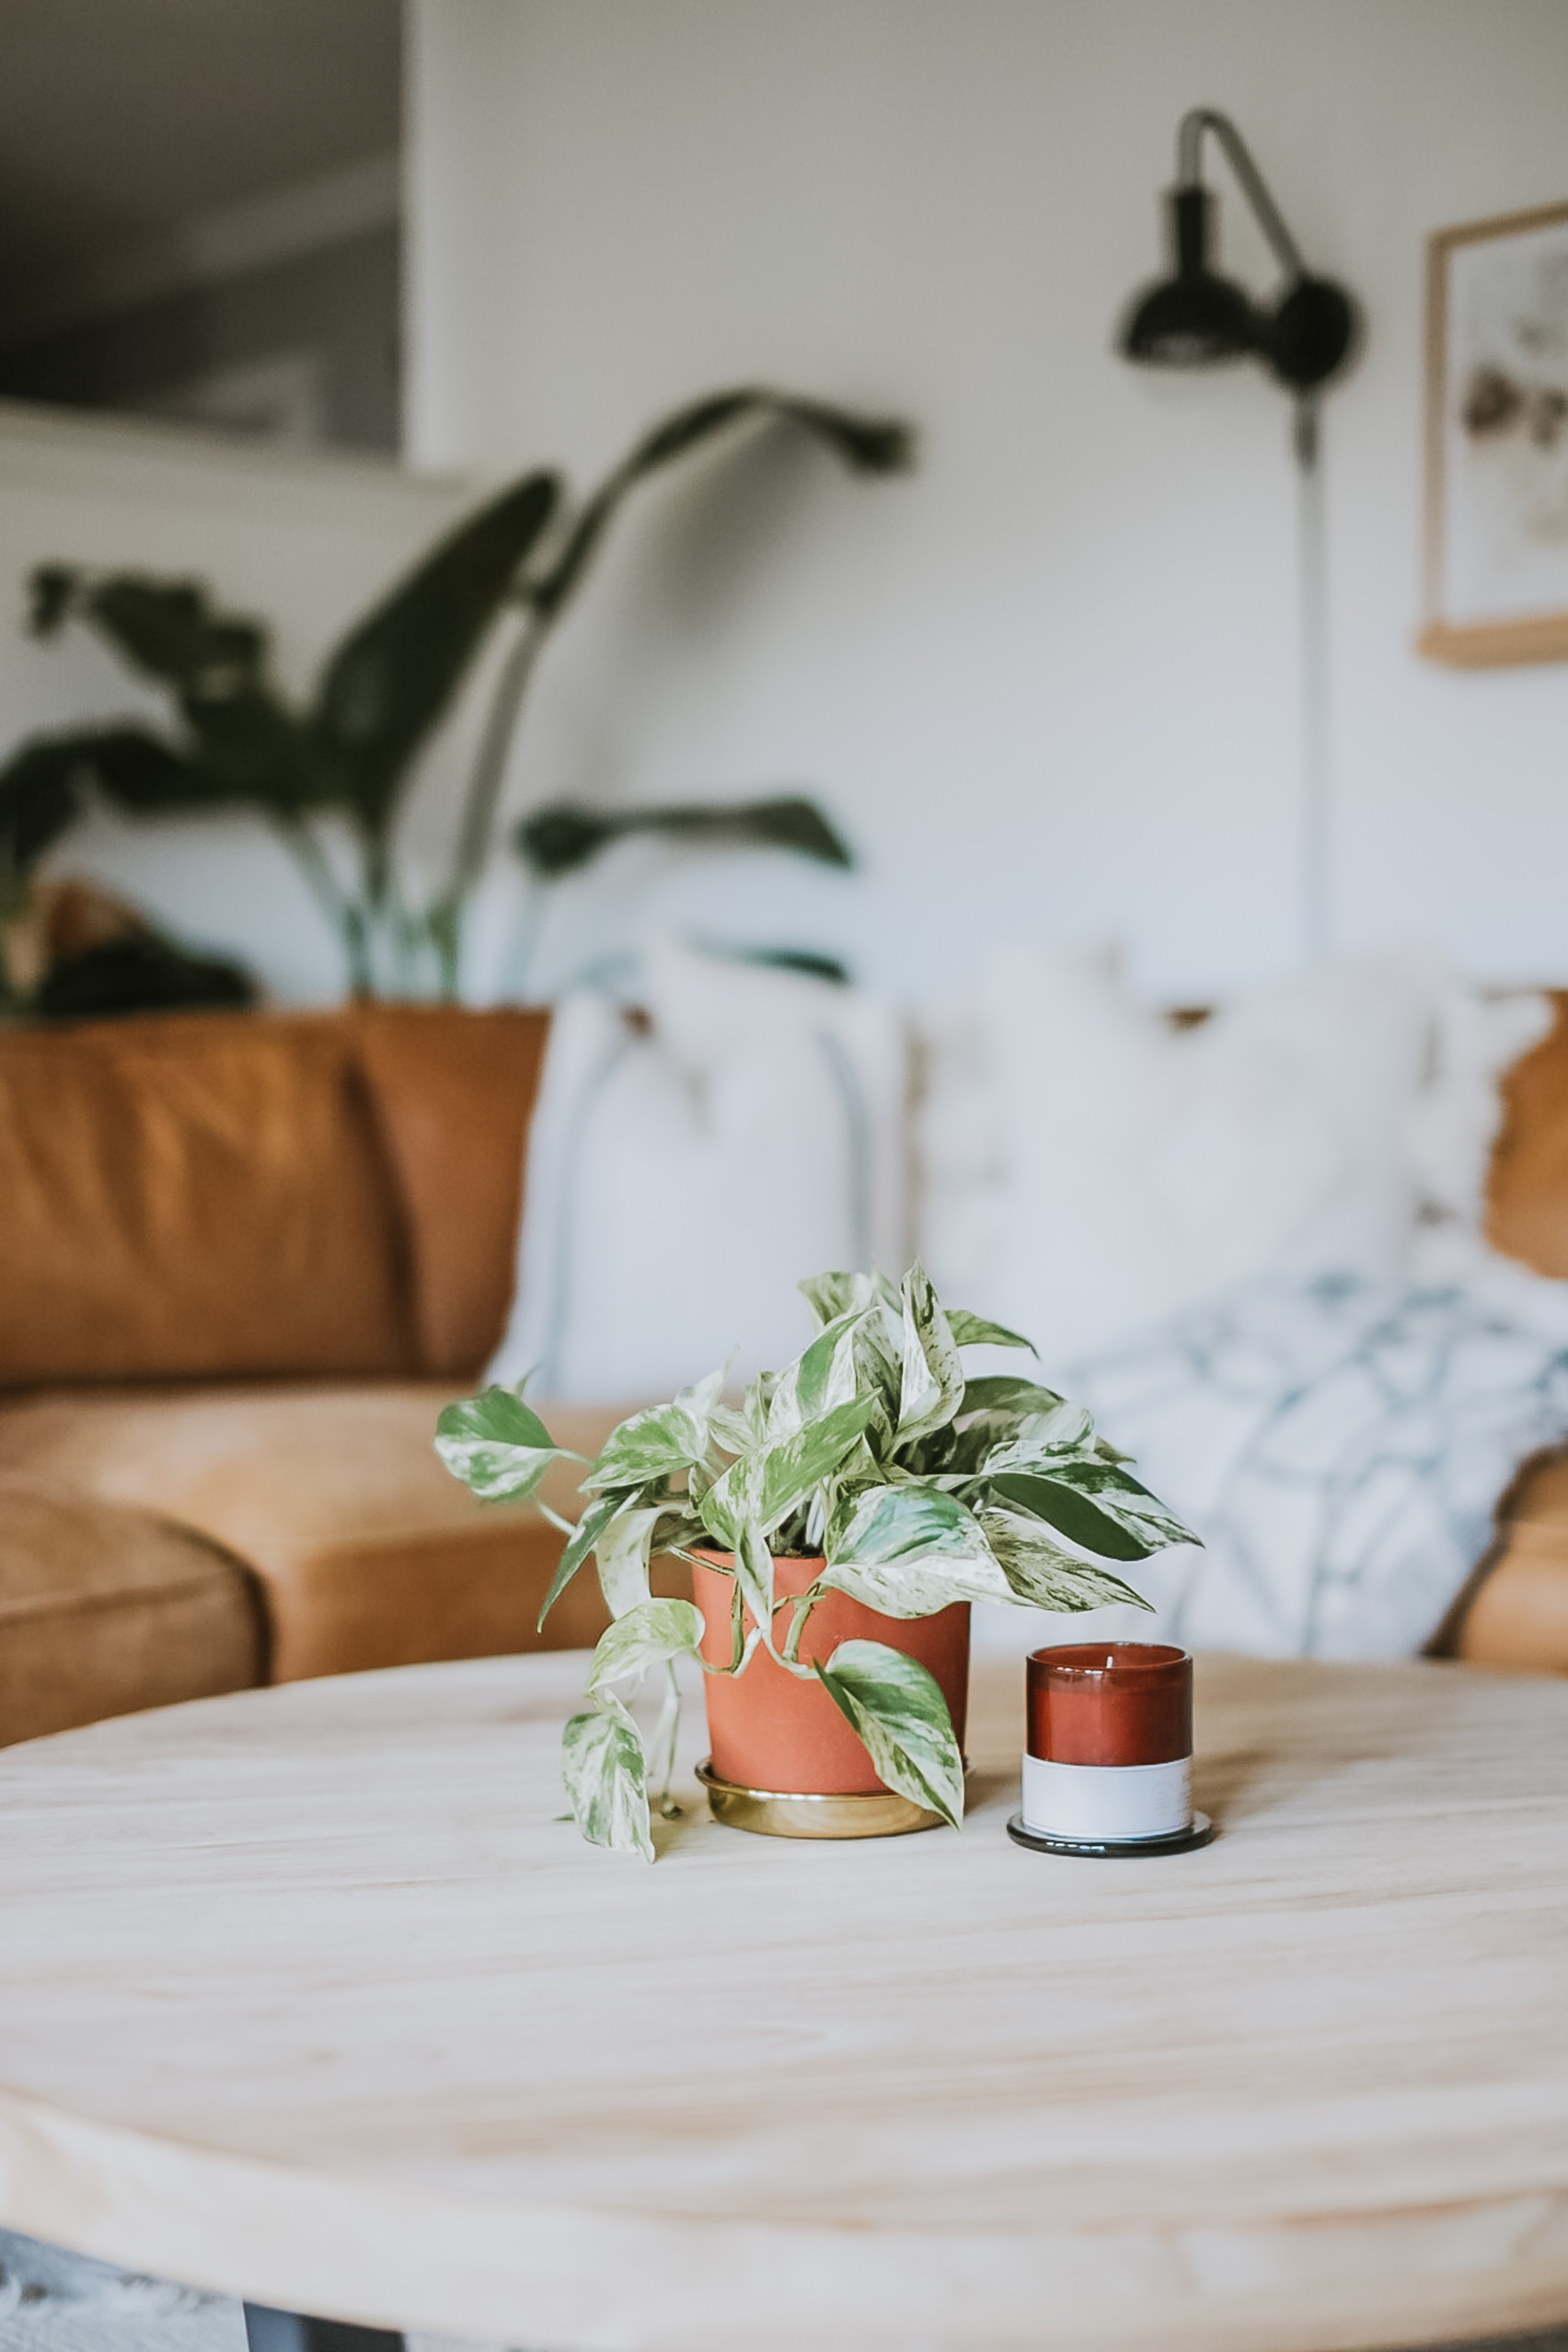 Where to find low maintenance house plants for cheap. How I find climbing house plants for under 10 dollars. Plants that are easy to keep alive